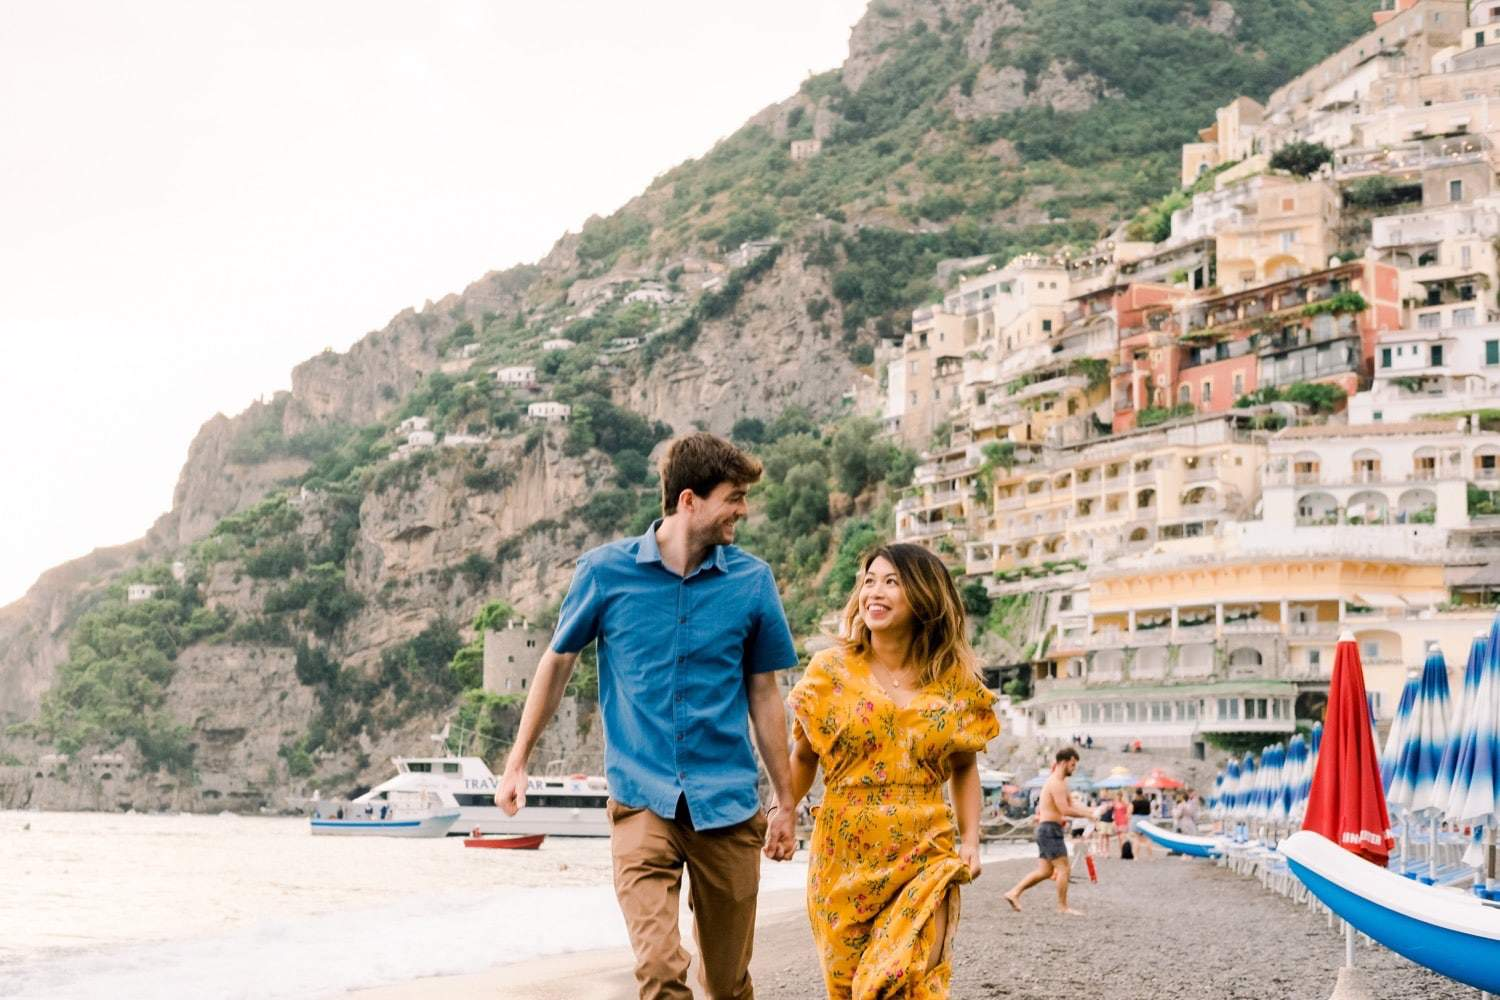 young couple running along the beach in Italy's Amalfi Coast